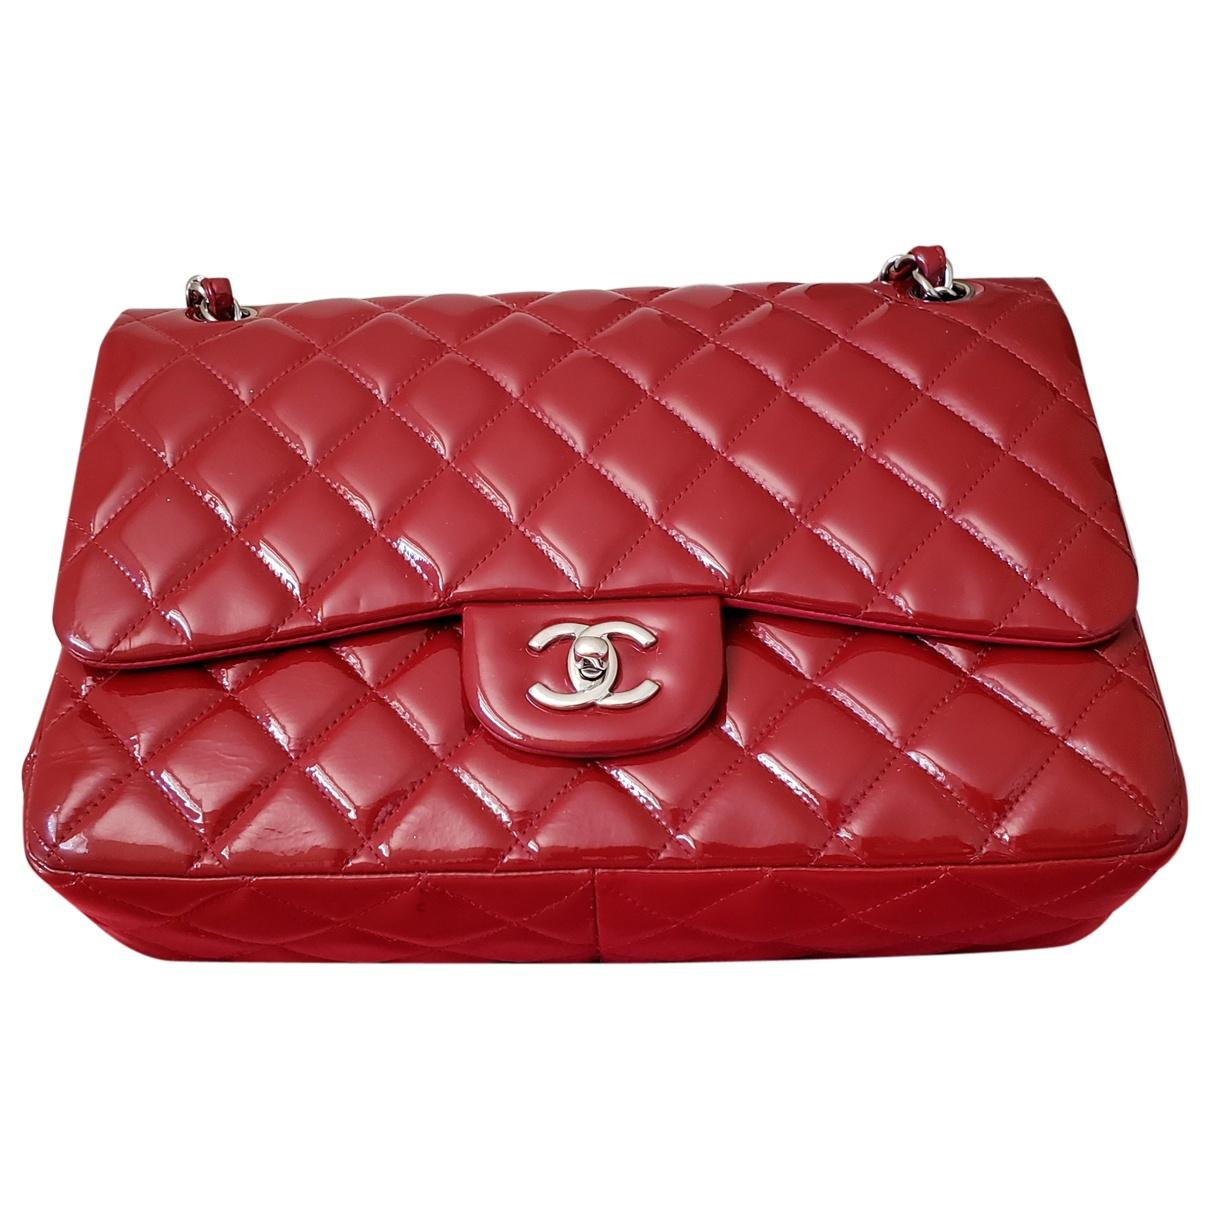 14b8d00bd042 Lyst - Chanel Timeless Patent Leather Bag in Red